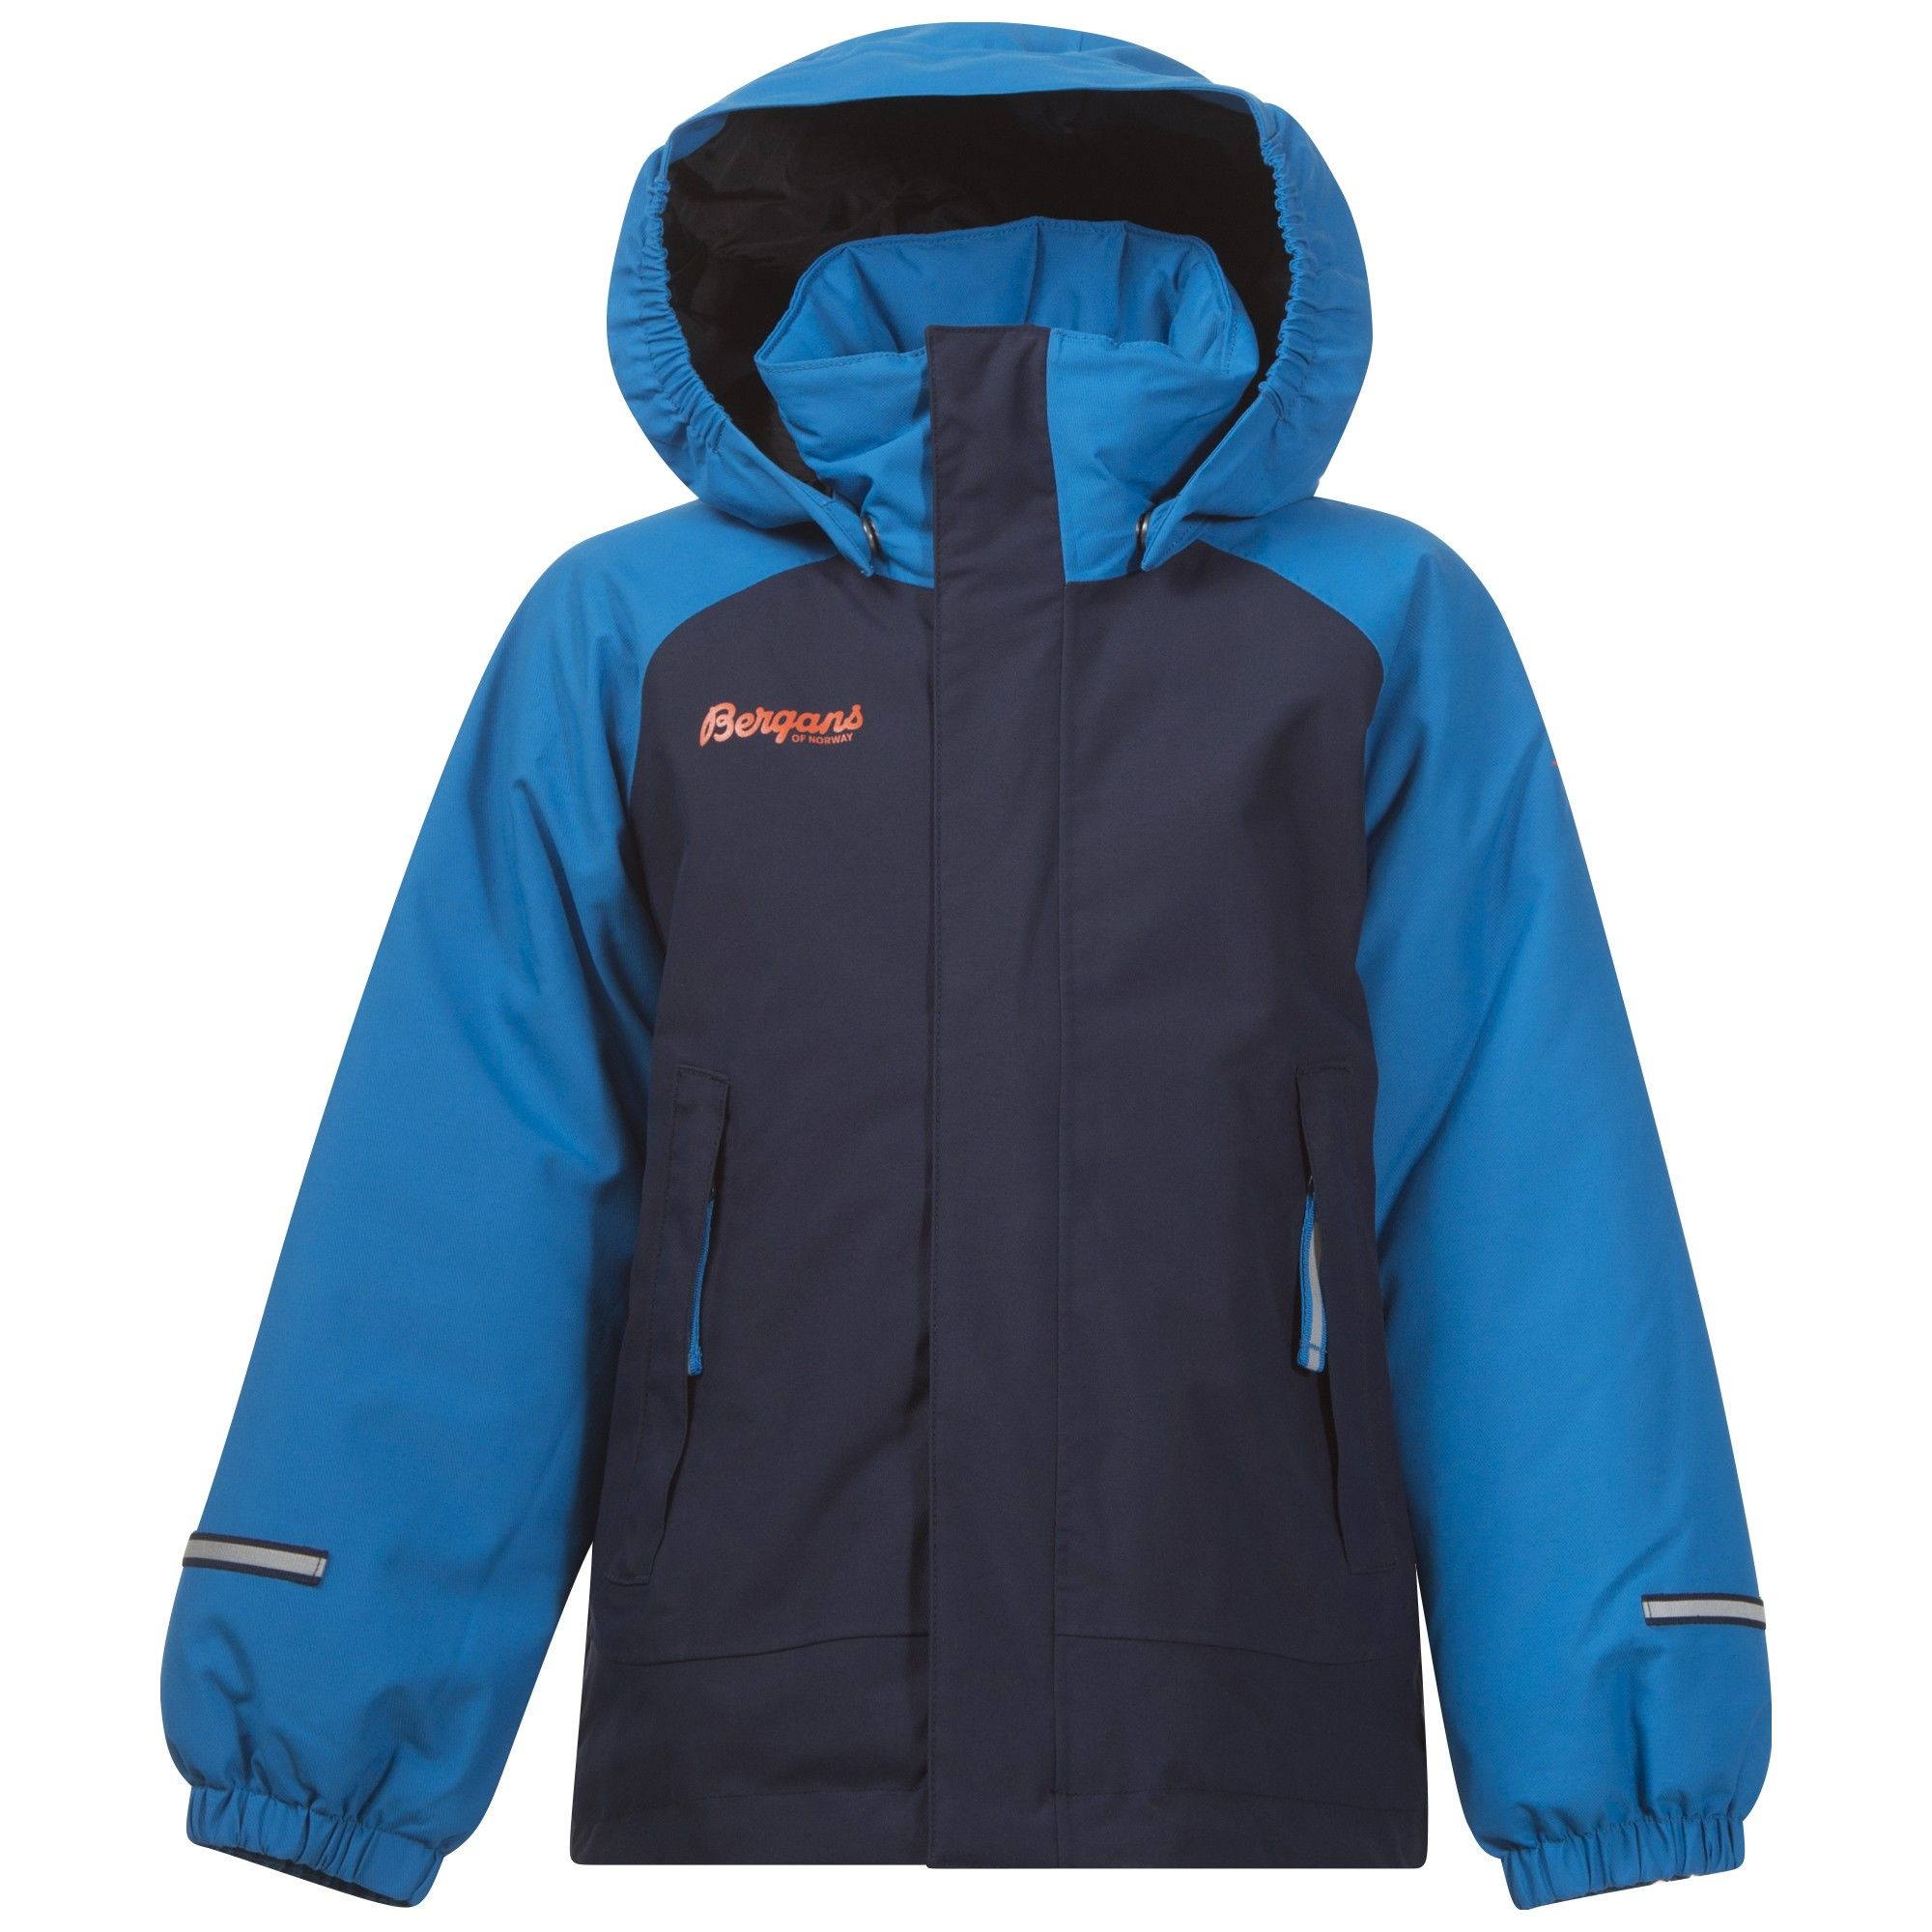 Bergans Storm Insulated Kids Jacket | Größe 92,86,98,104,110,116,122,128 | Kin